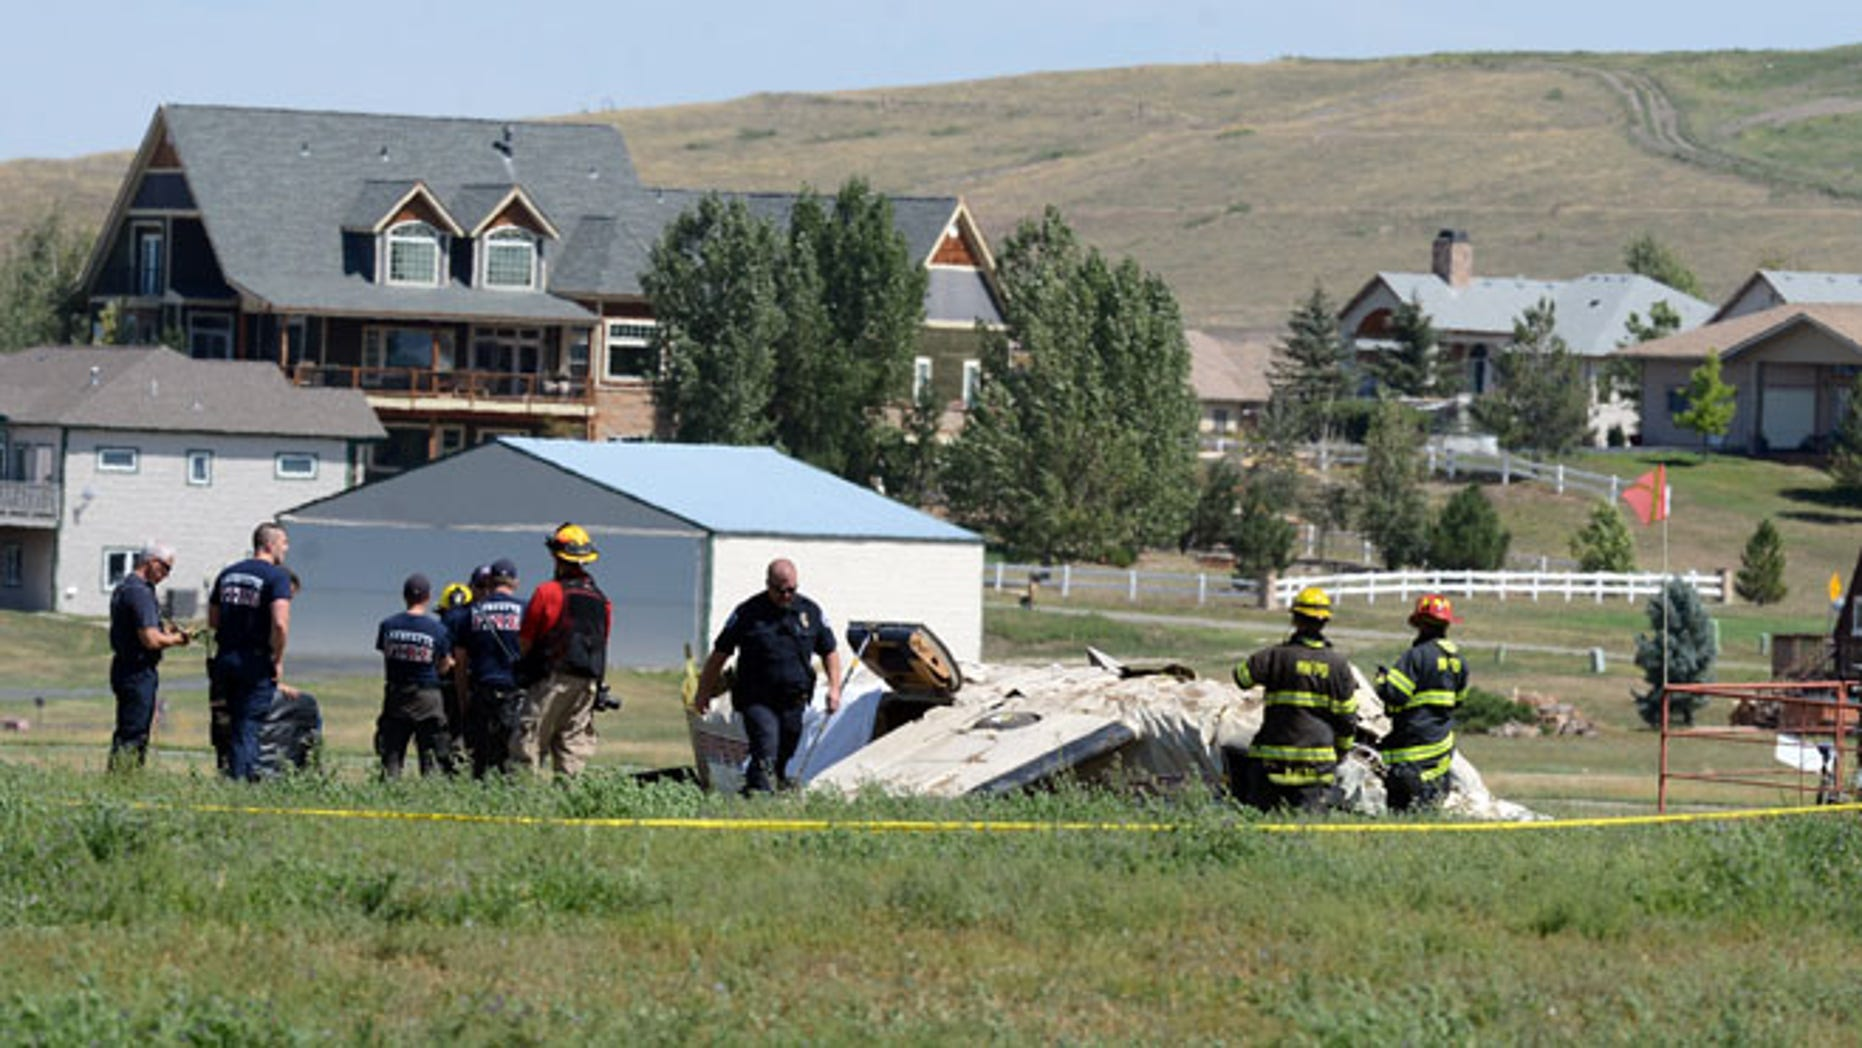 Aug 31, 2014: Police and firefighters work on the scene where three people were killed and two others injured after an airplane crashed in a field northwest of the main runway at Erie Municipal Airport while coming in for a landing in Erie, Colo.